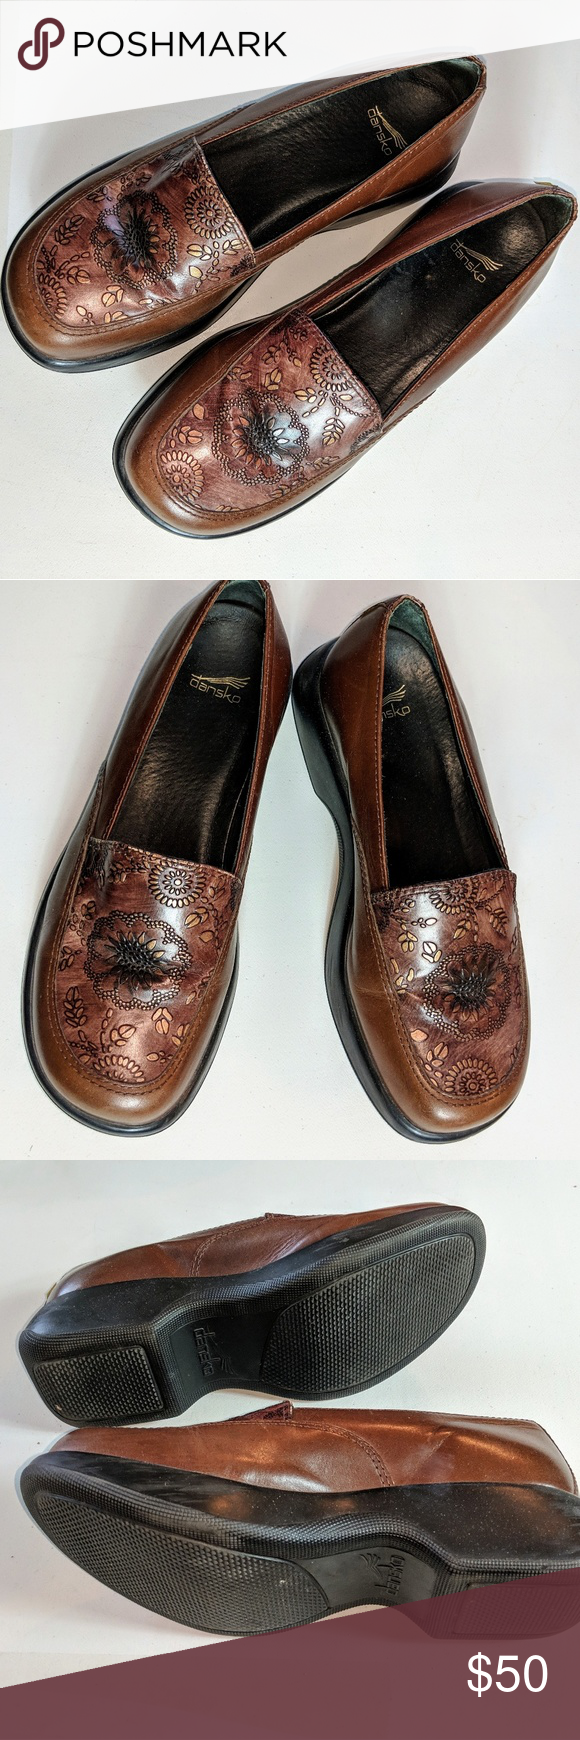 dc61571747c DANSKO Leather Gold Floral Embossed 39 EUR 8.5-9 Gorgeous professional  footwear perfect for those